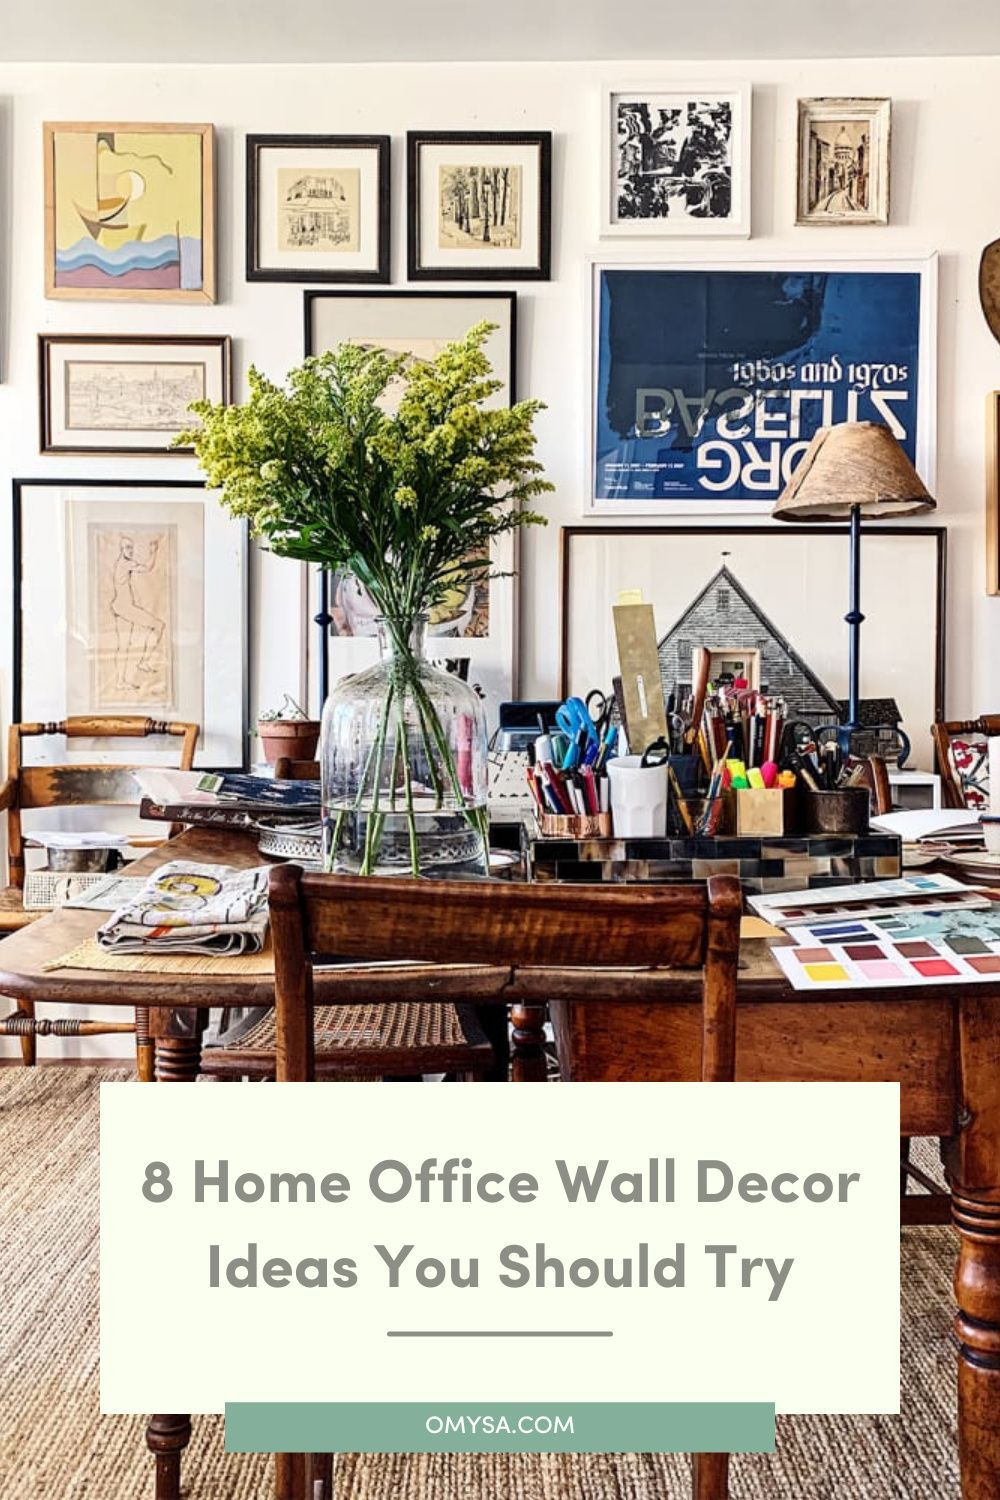 8 Home Office Wall Decor Ideas To Spice Up Your Walls In 2021 Office Wall Decor Wall Decor Office Walls